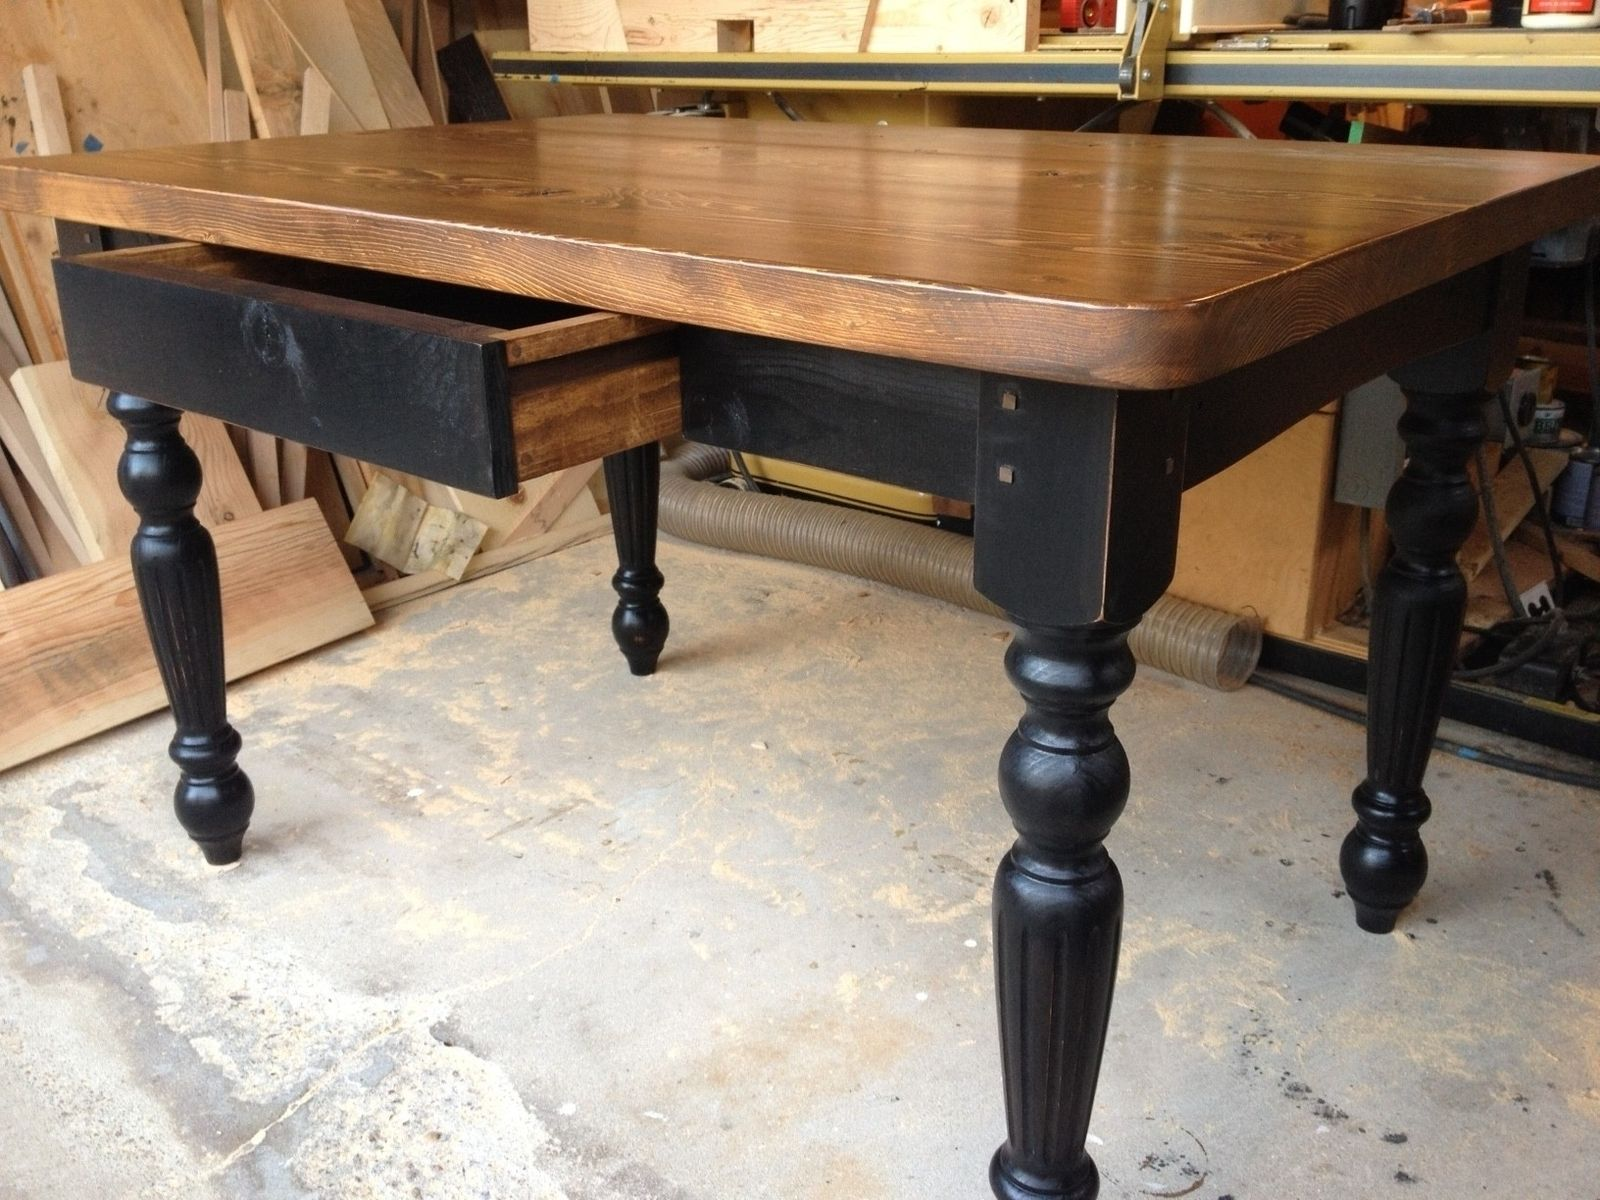 brian camet farmhouse table company san diego ca - Antique Farmhouse Kitchen Tables